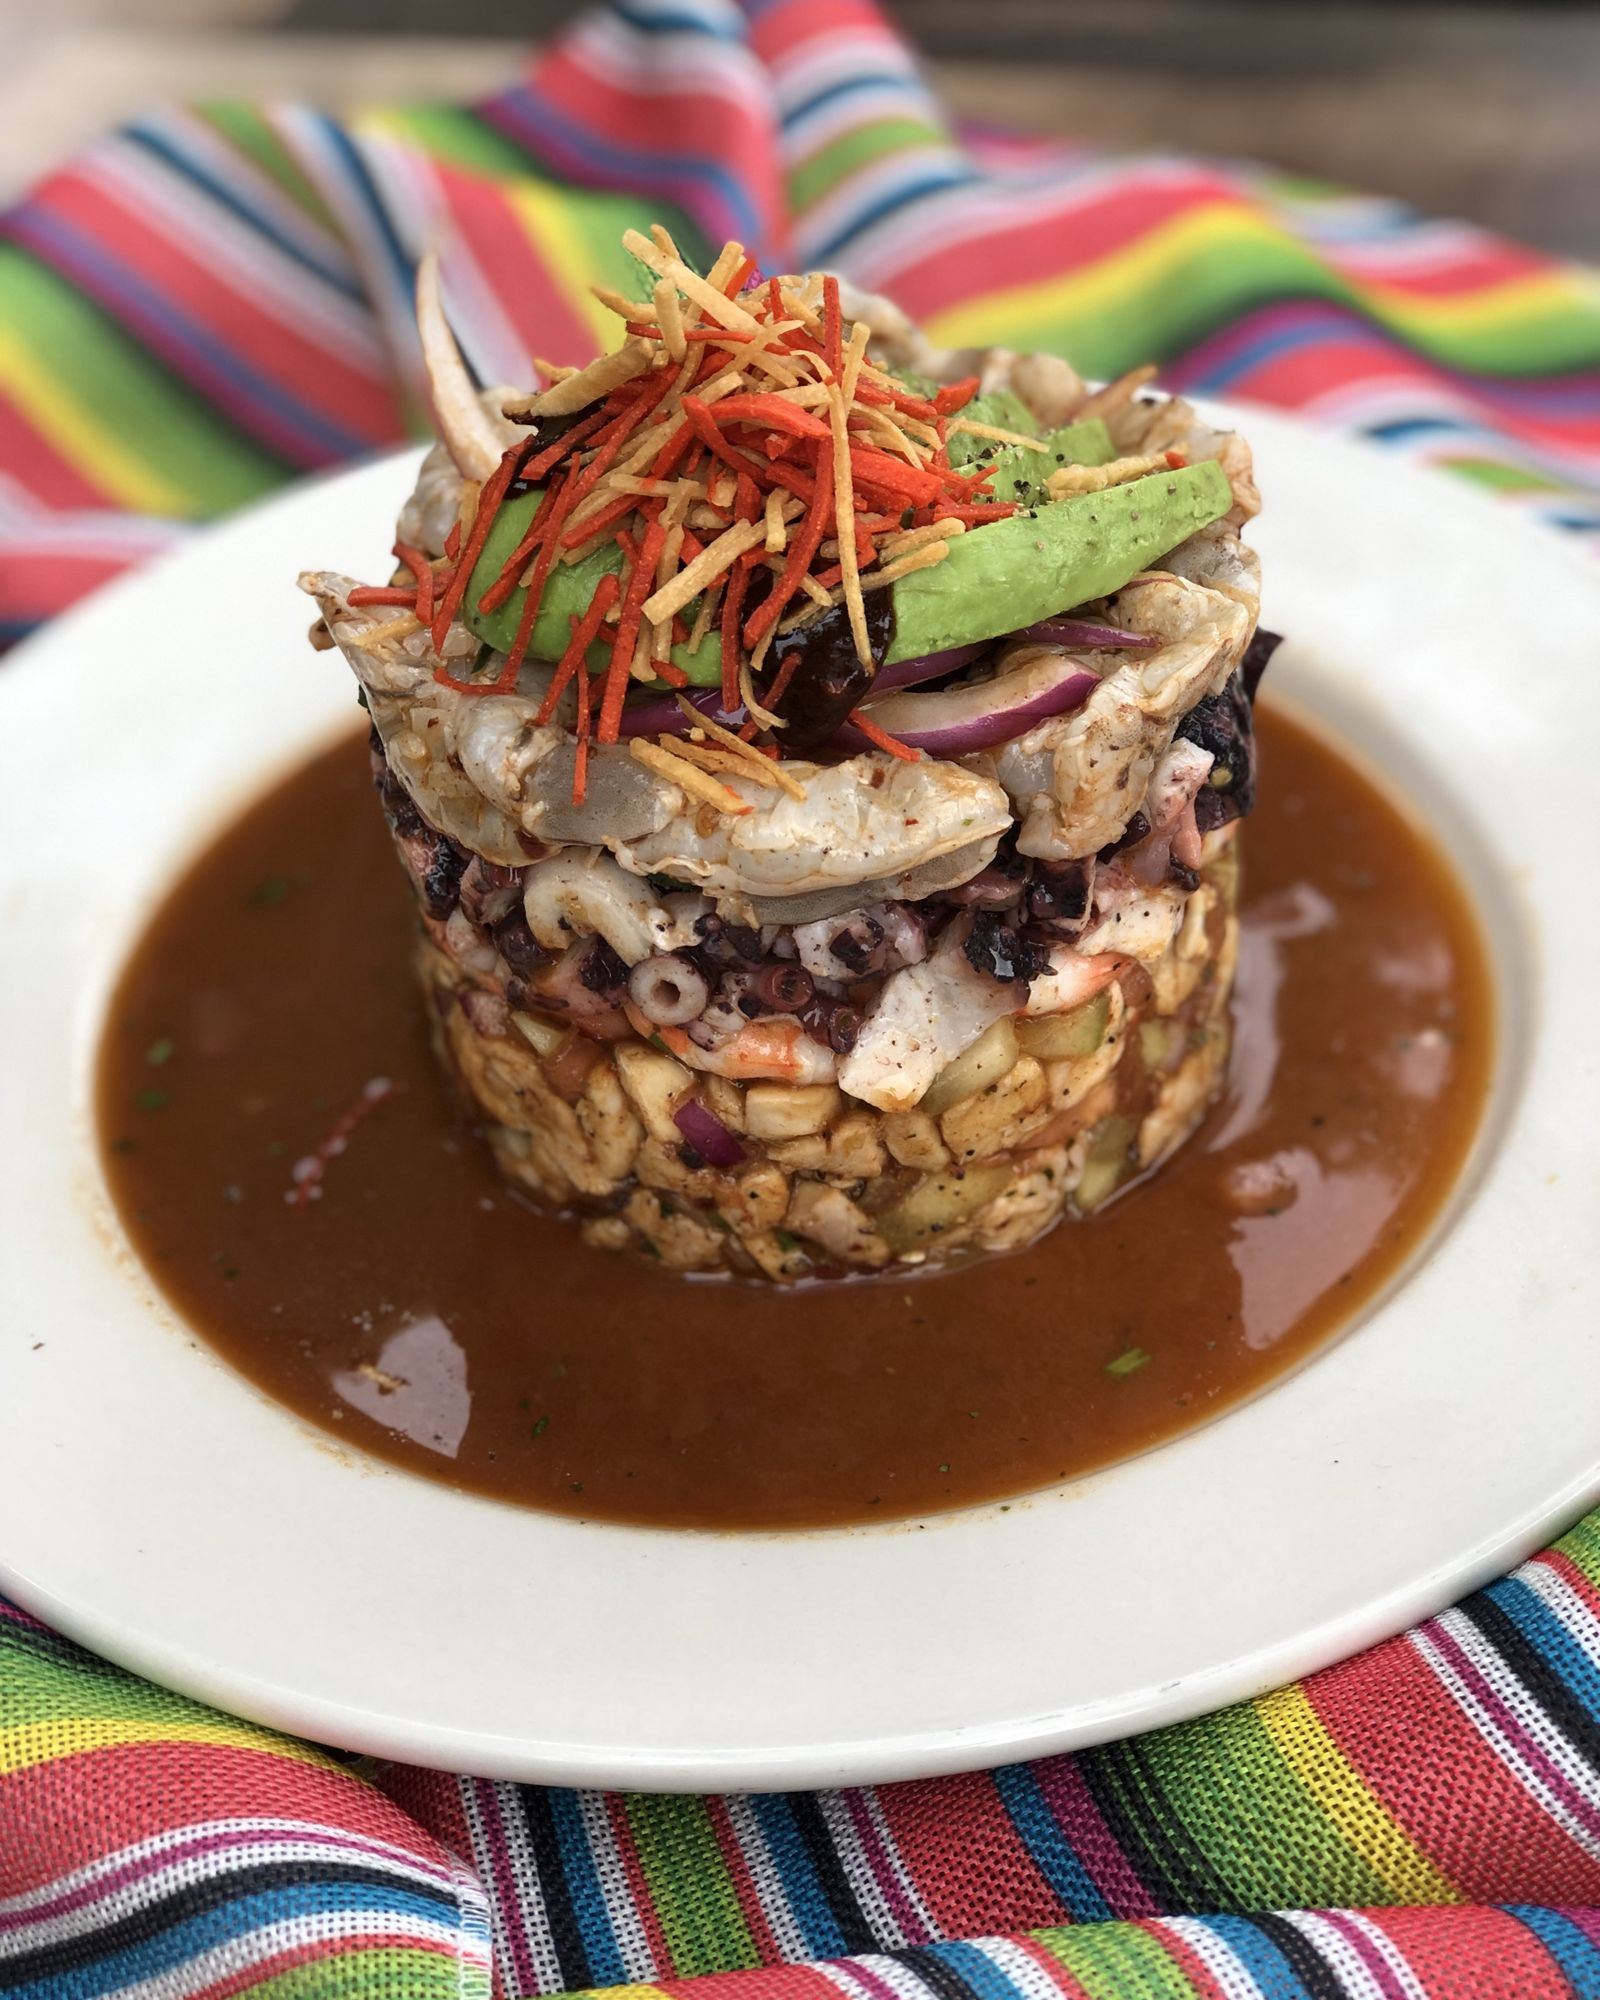 Los Cucos Unveils Newest Concept, La Marisquera Ostioneria Seafood and Oyster Bar with Three Locations